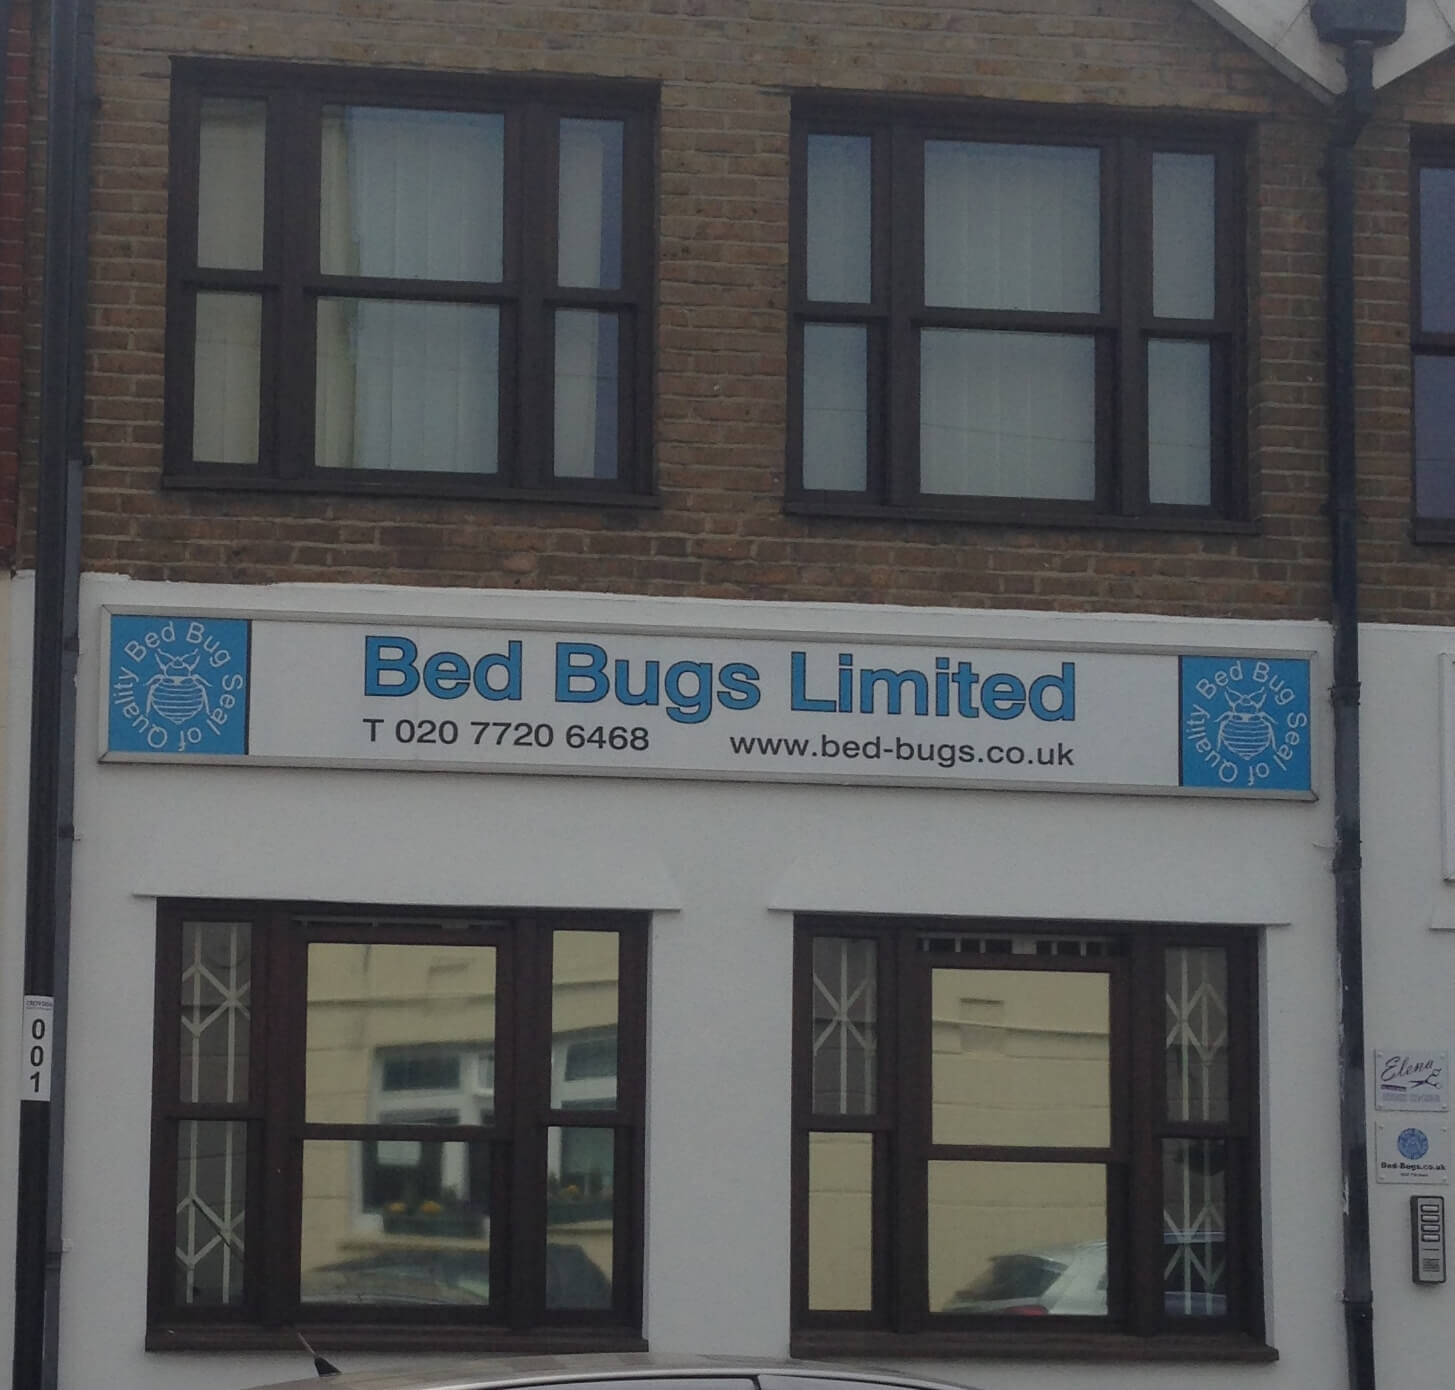 Bed Bug Detection Treatment And Removal Bed Bugs Ltd